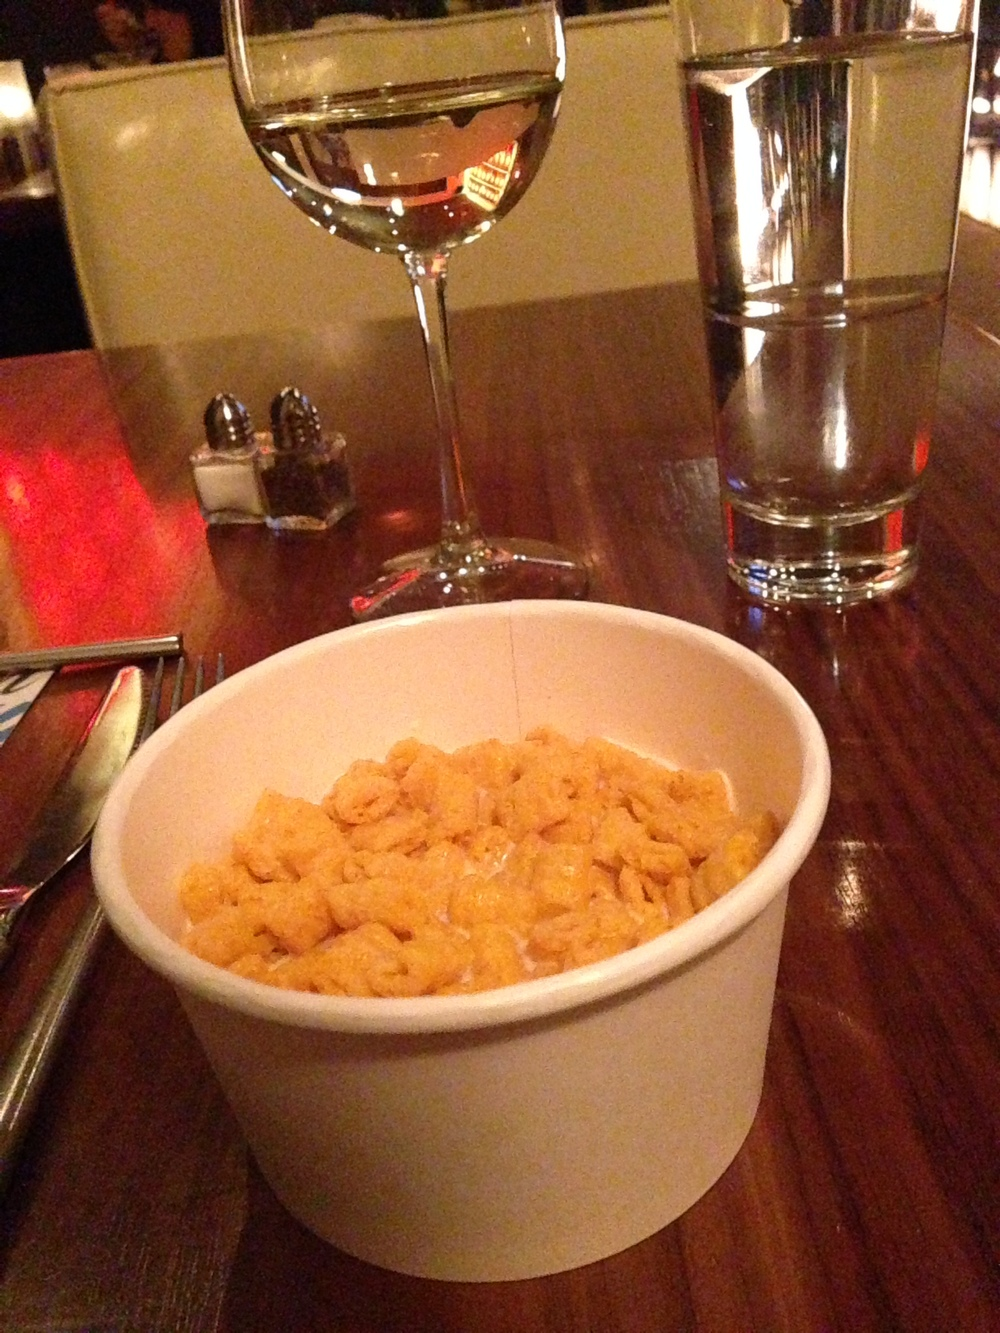 Captain Crunch paired with Riesling. Sweet paired with sweet.